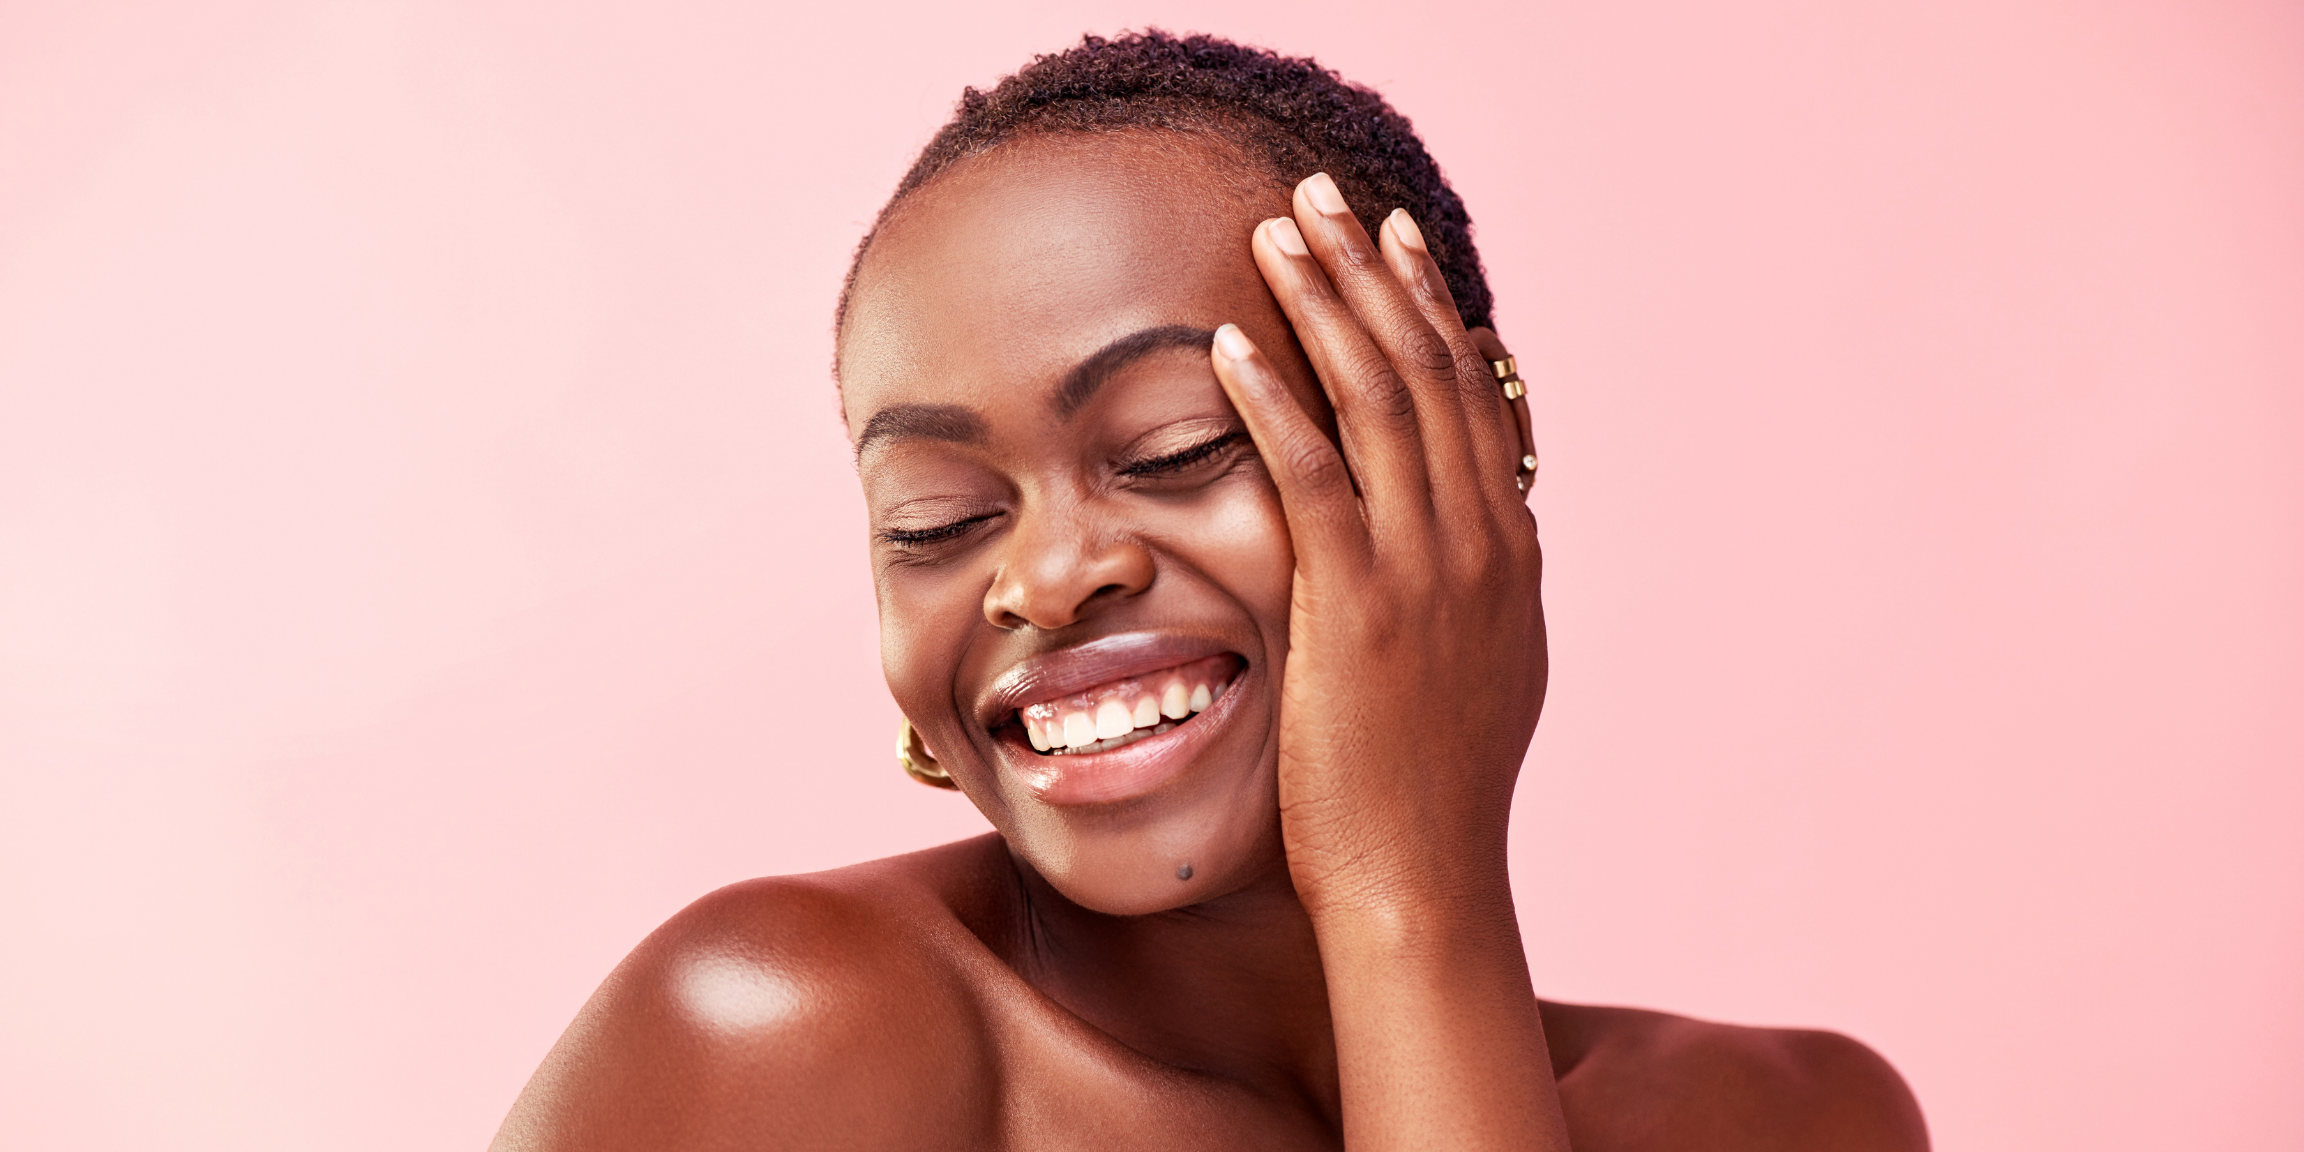 beautiful woman touching her skin and smiling with her eyes closed